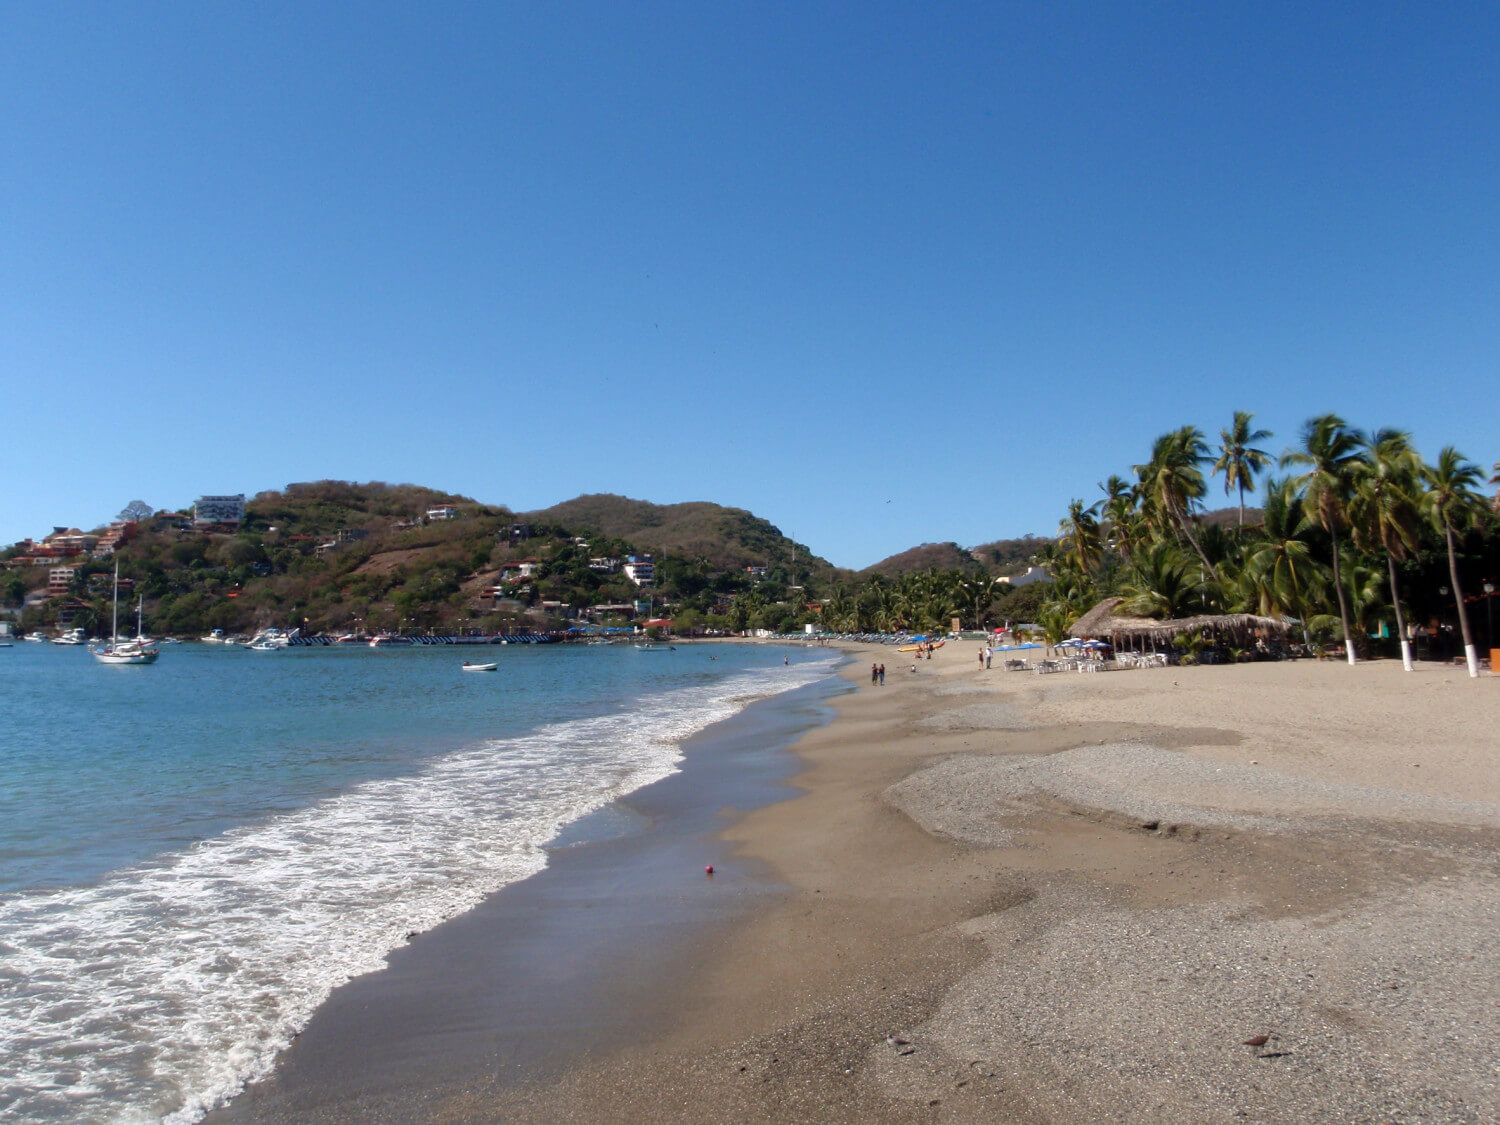 Beach in Zihautanejo, West Coast of Mexico